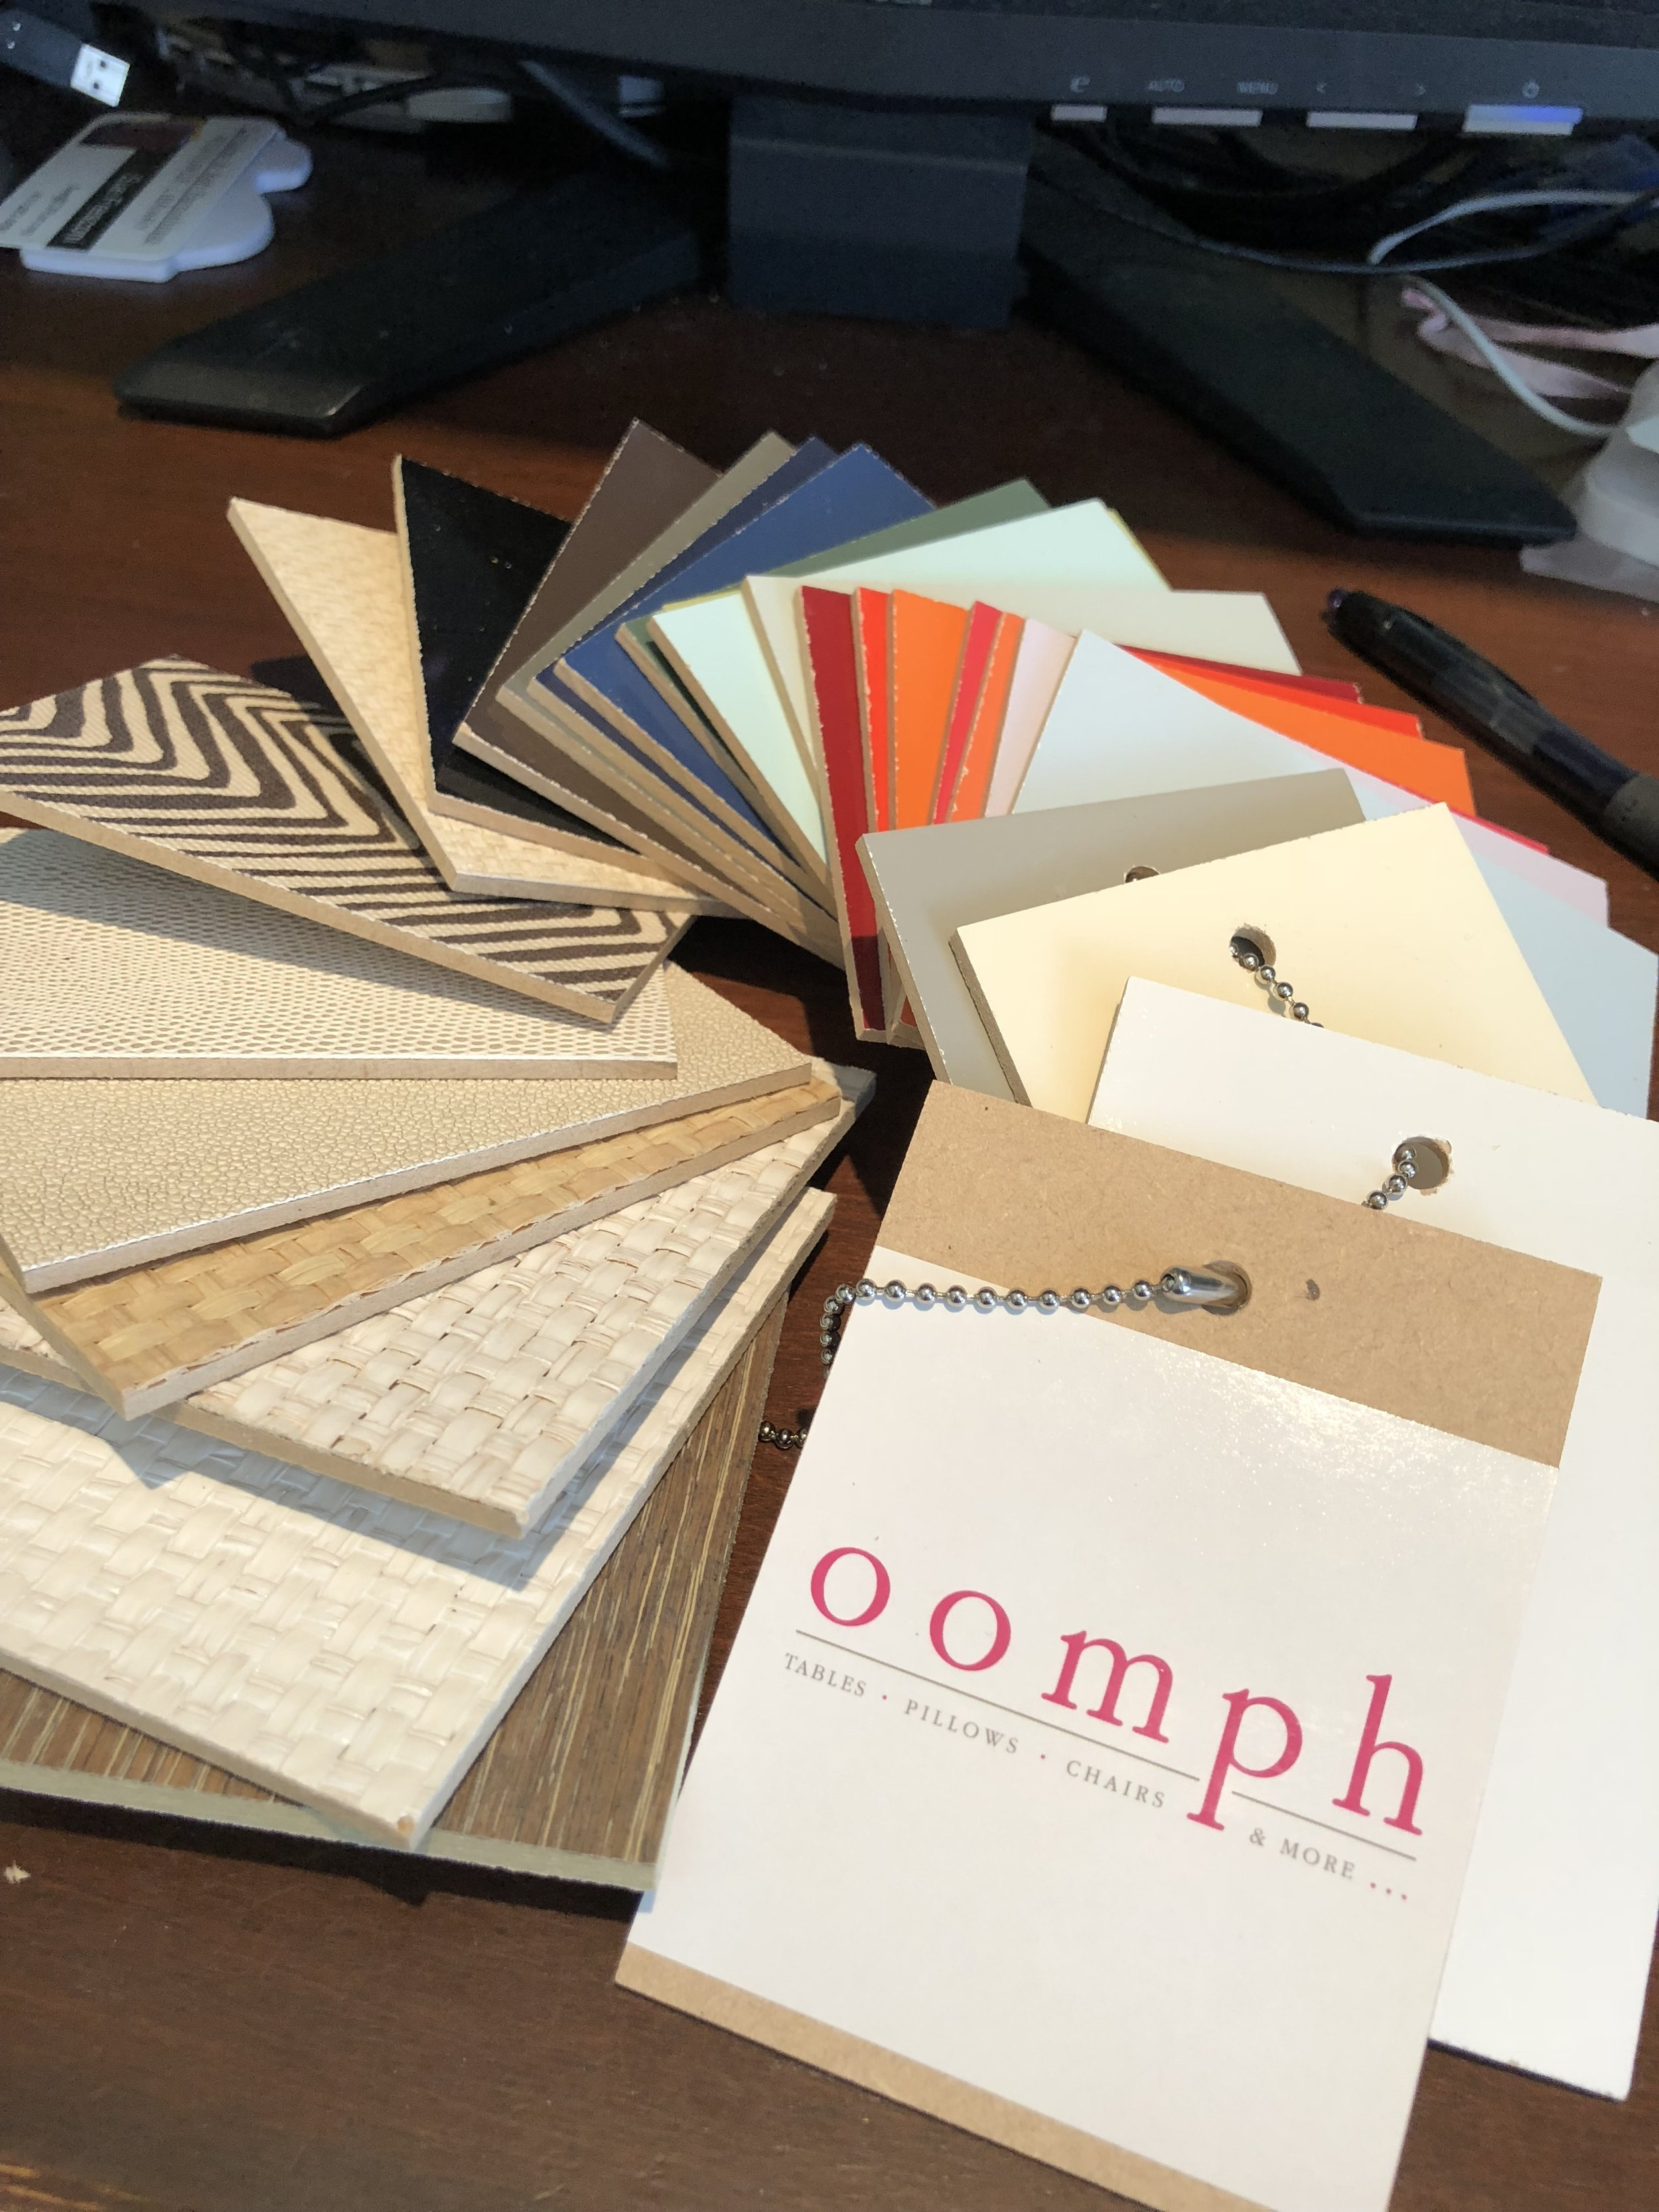 Just got finish samples from Oomph today. Aren't they fun?